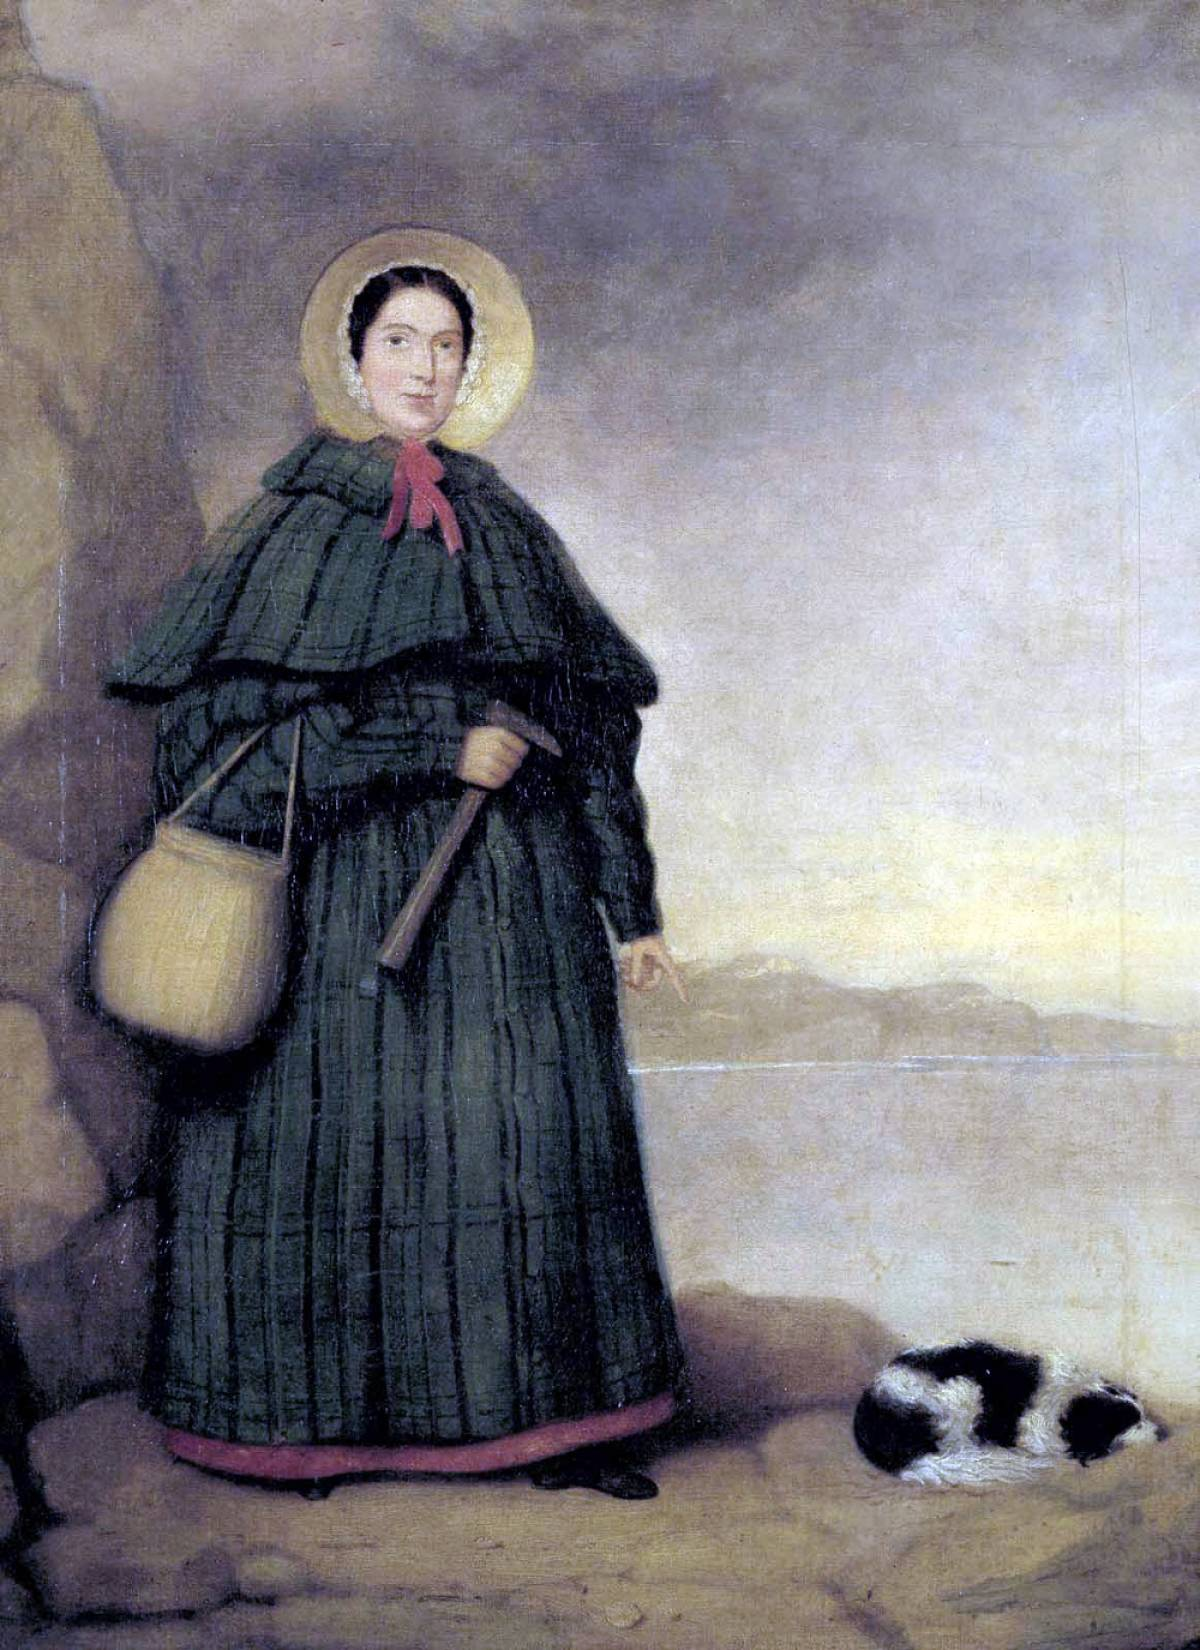 the Dorset lady who changed the way we see the world